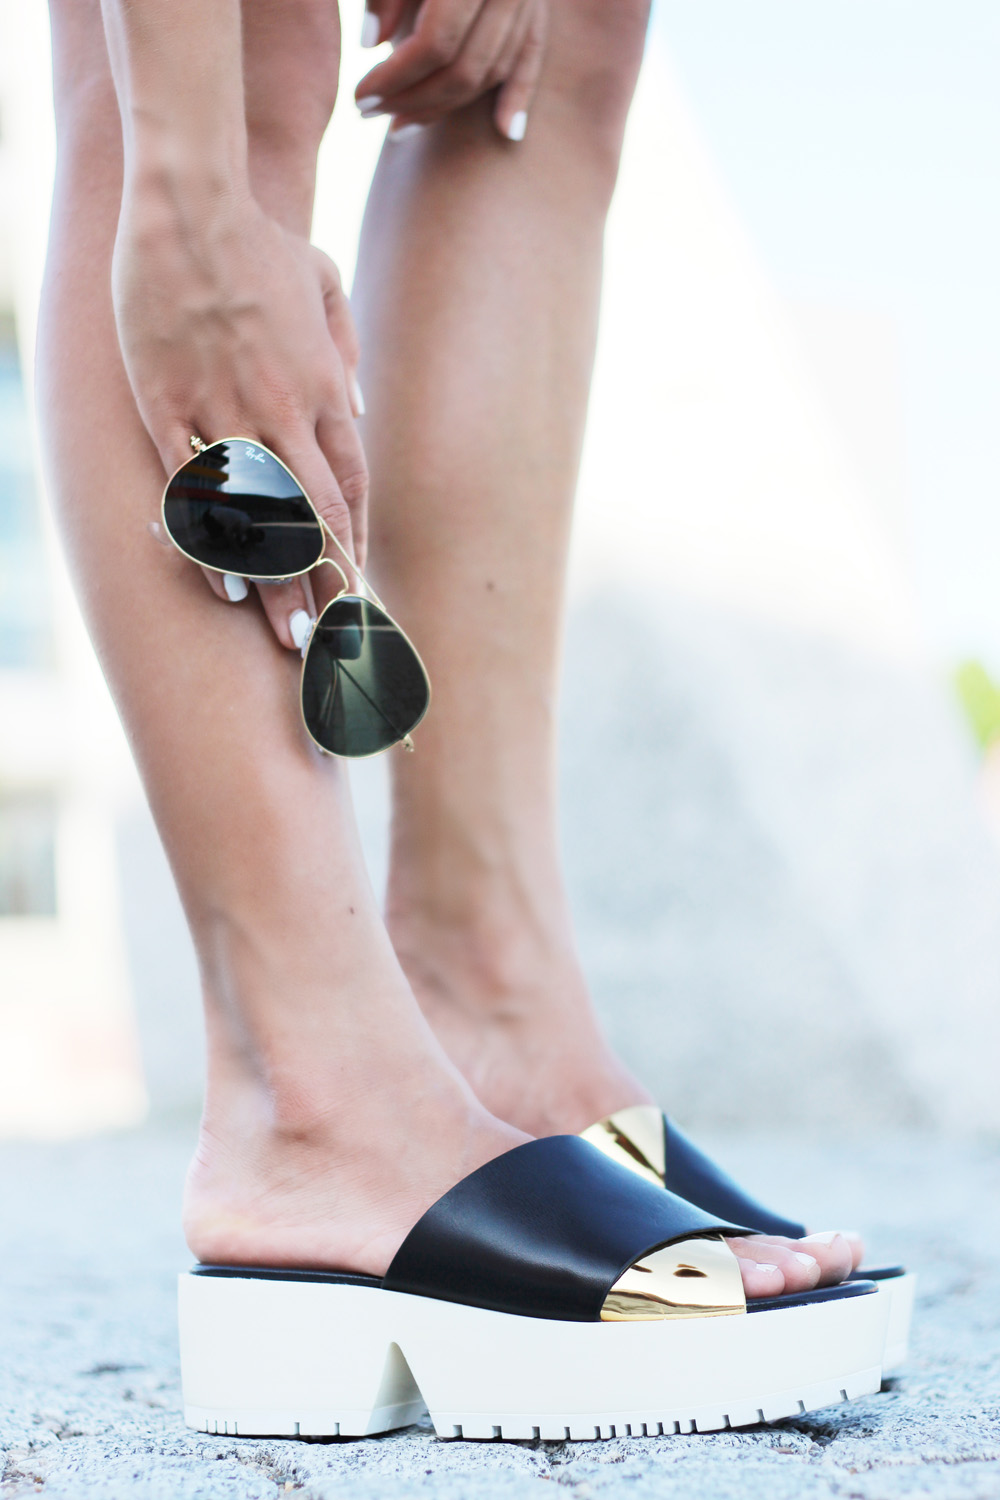 fatimayarie-plateau-sandals-platformshoes-clogs-rayban-sunglasses-img_8631